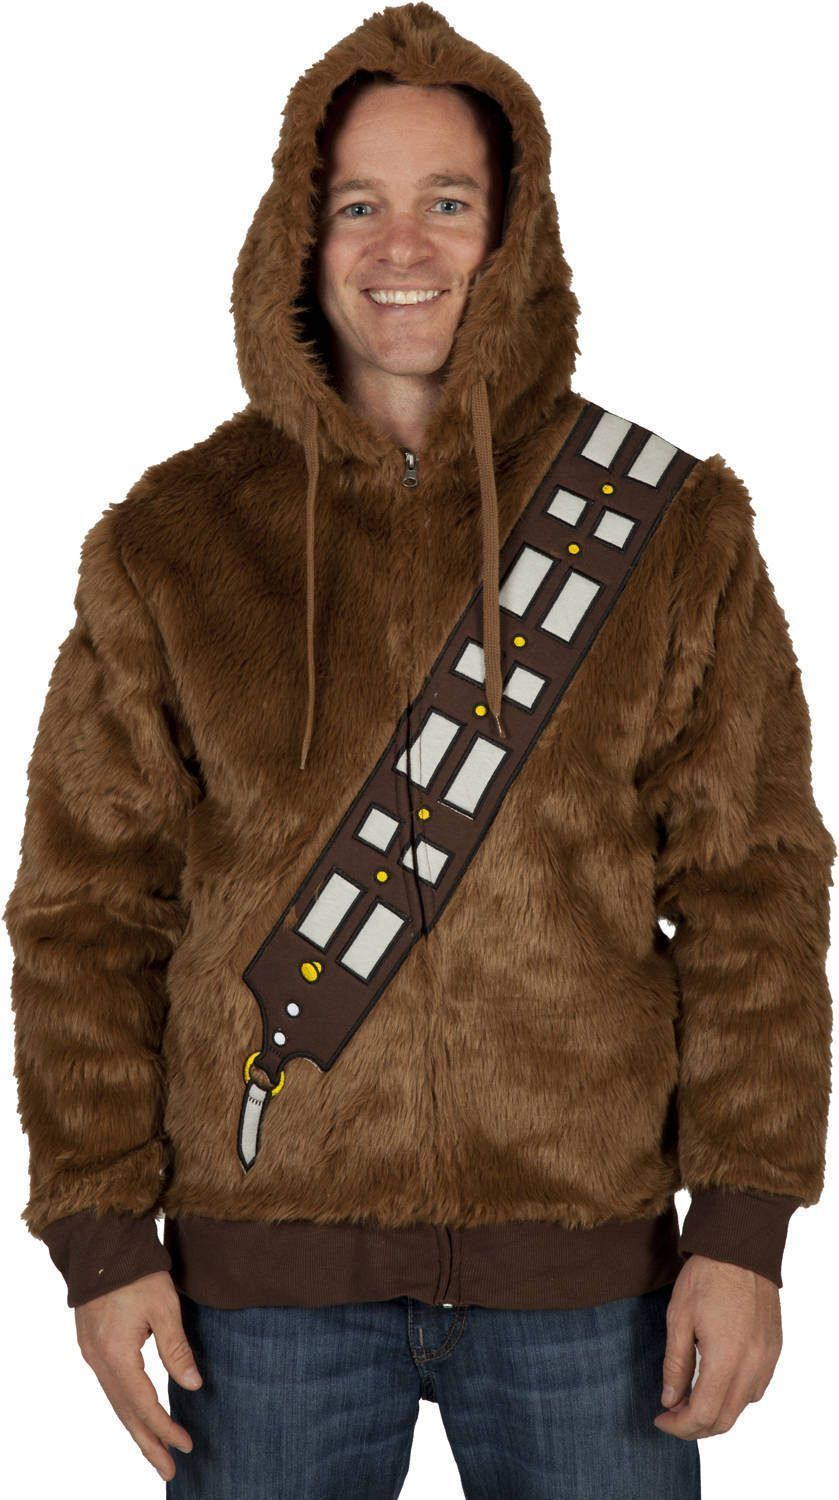 I have a Chewbacca cap, because we don't need jackets too often in Florida.... but this is awesome :D ~ Chewbacca Fur Hoodie.. oh my god you guys, I need it!